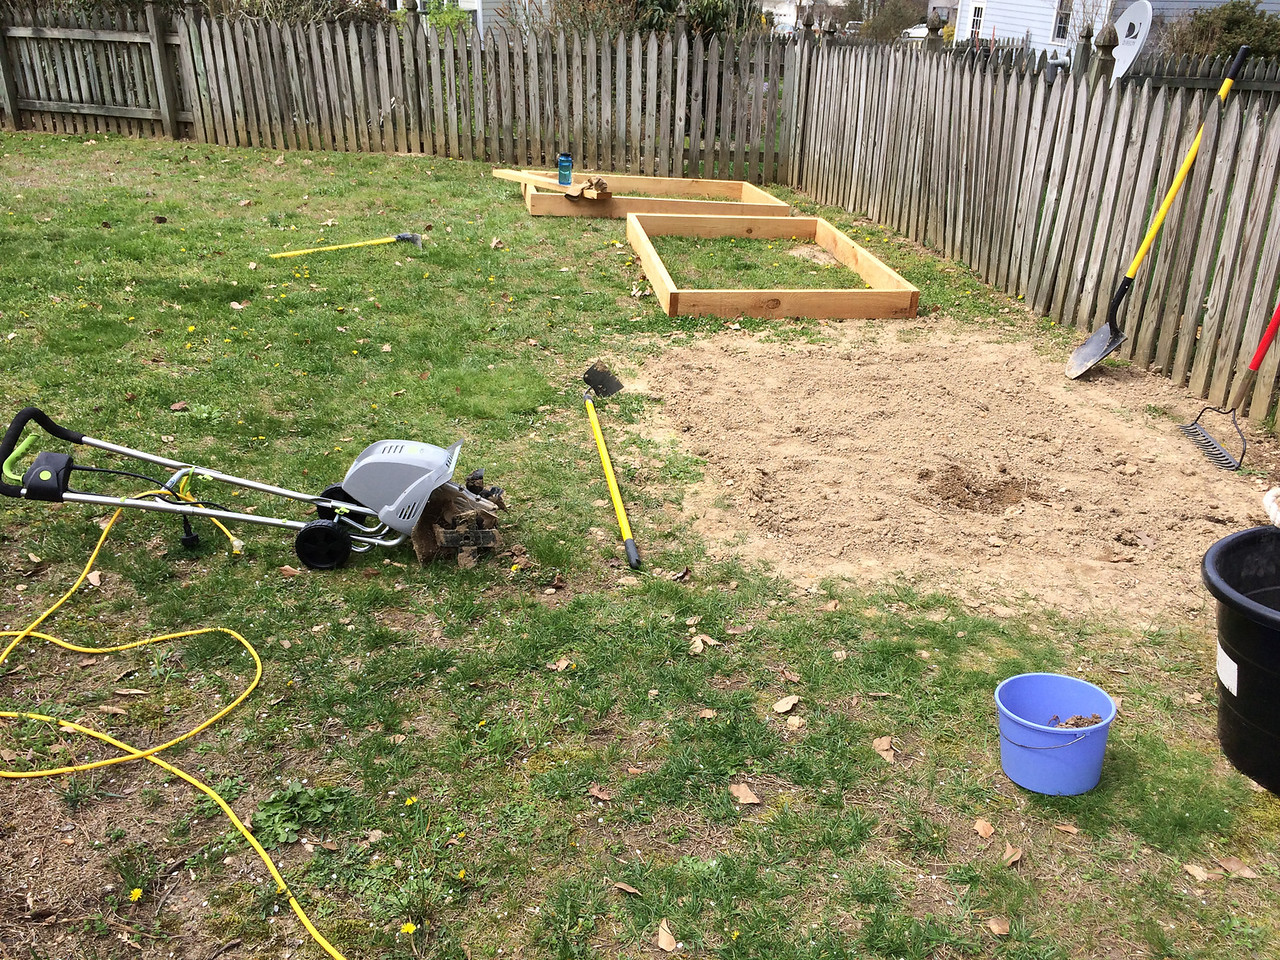 We bought a small electric tiller, the Earthwise TC70001. Since I've already dug and turned the dirt the tiller makes short work of it. It would have been a much slower process if I hadn't used the shovel first. Or at least that's what I tell myself.